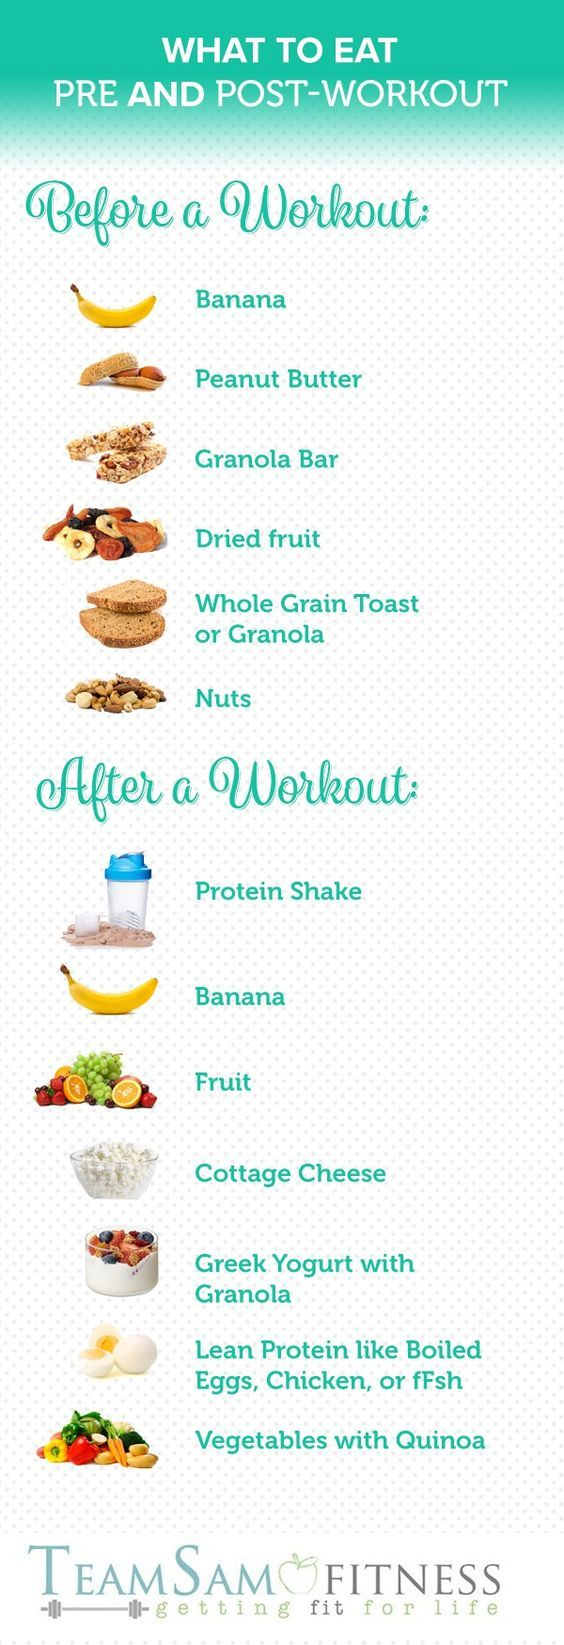 Beauty and Fitness with Marry: Workout Diet